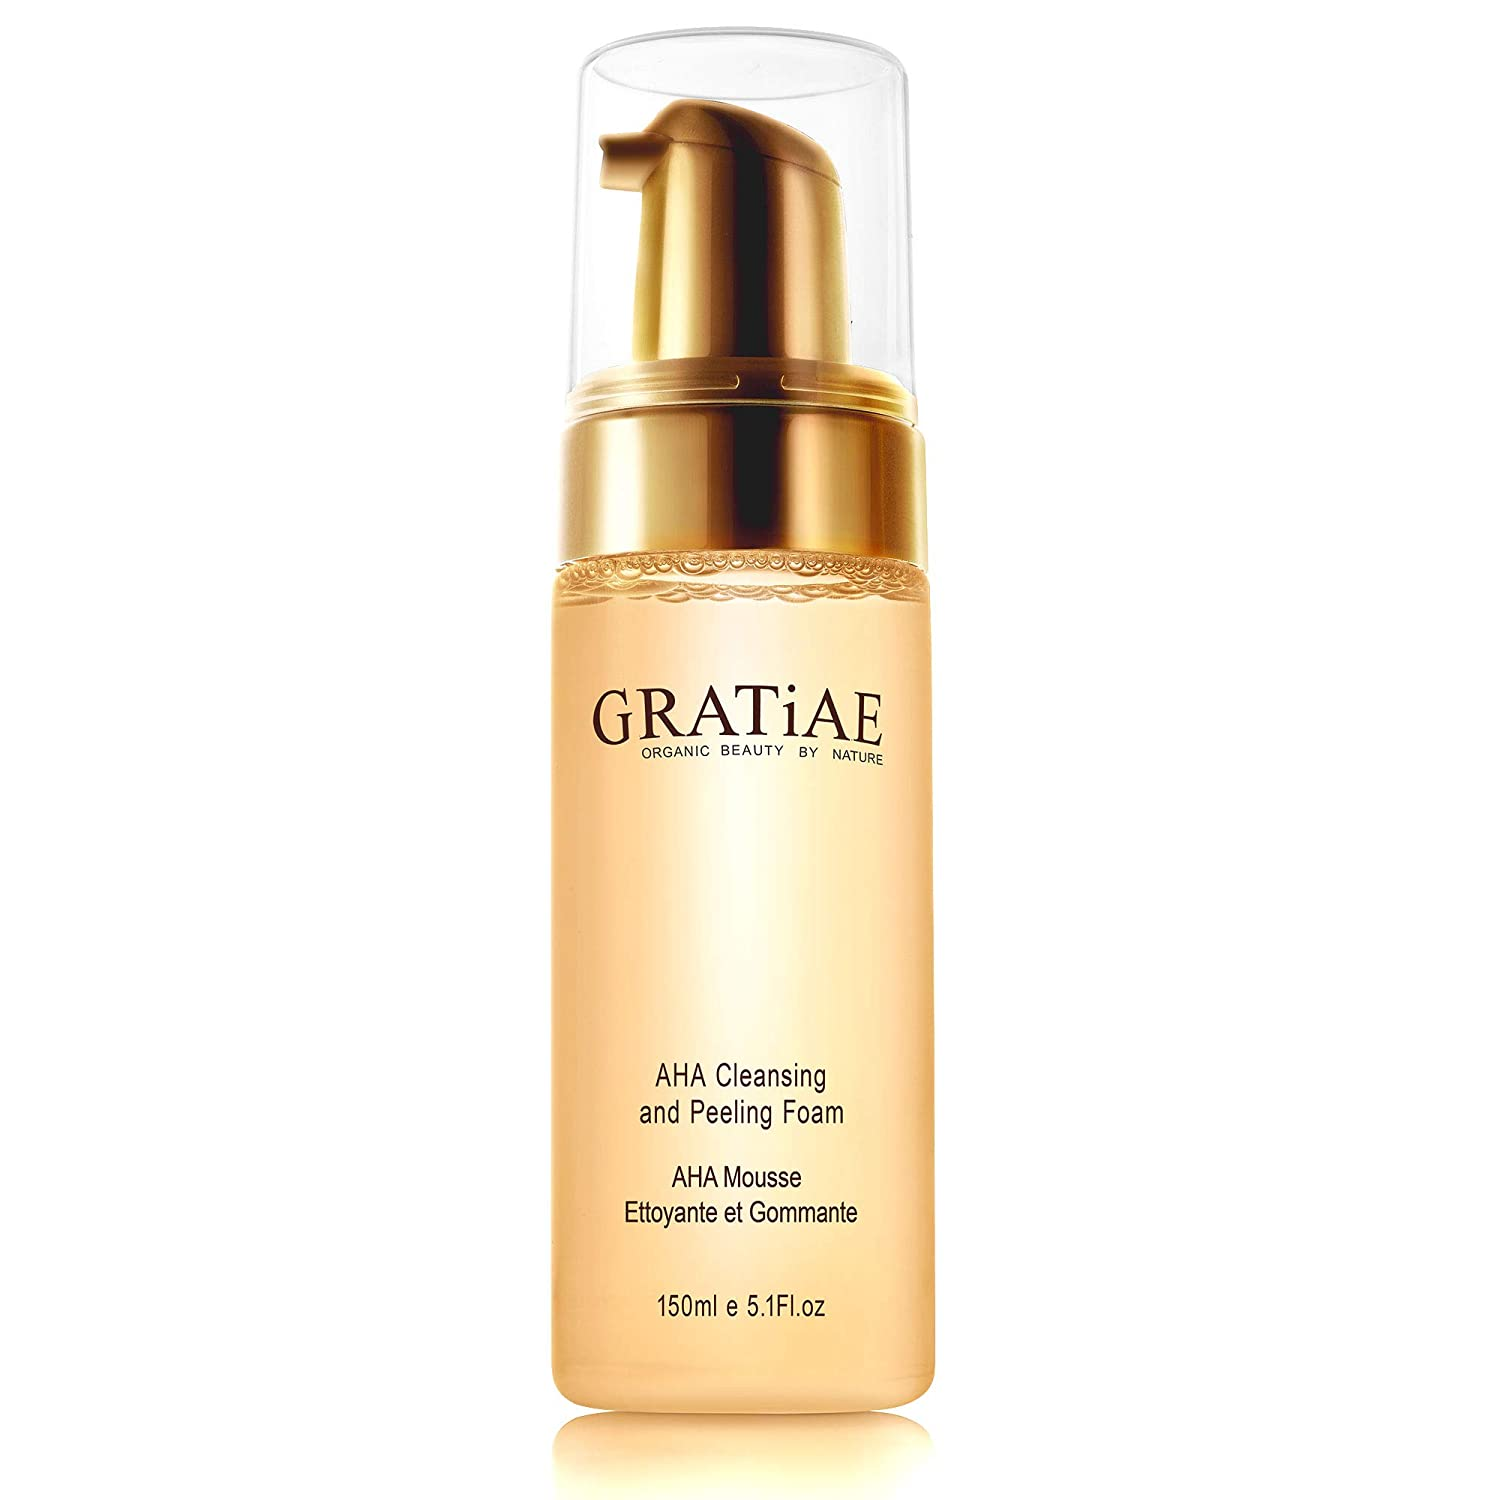 Gratiae Organics AHA facial Cleanser and Peeling Foam, Anti-Aging, Breakout & Blemish, Wrinkle Reducing, Gel Face Wash - Clear skin Oily, Dry & Sensitive Skin with Organic & Natural Ingredients 5.1 fl